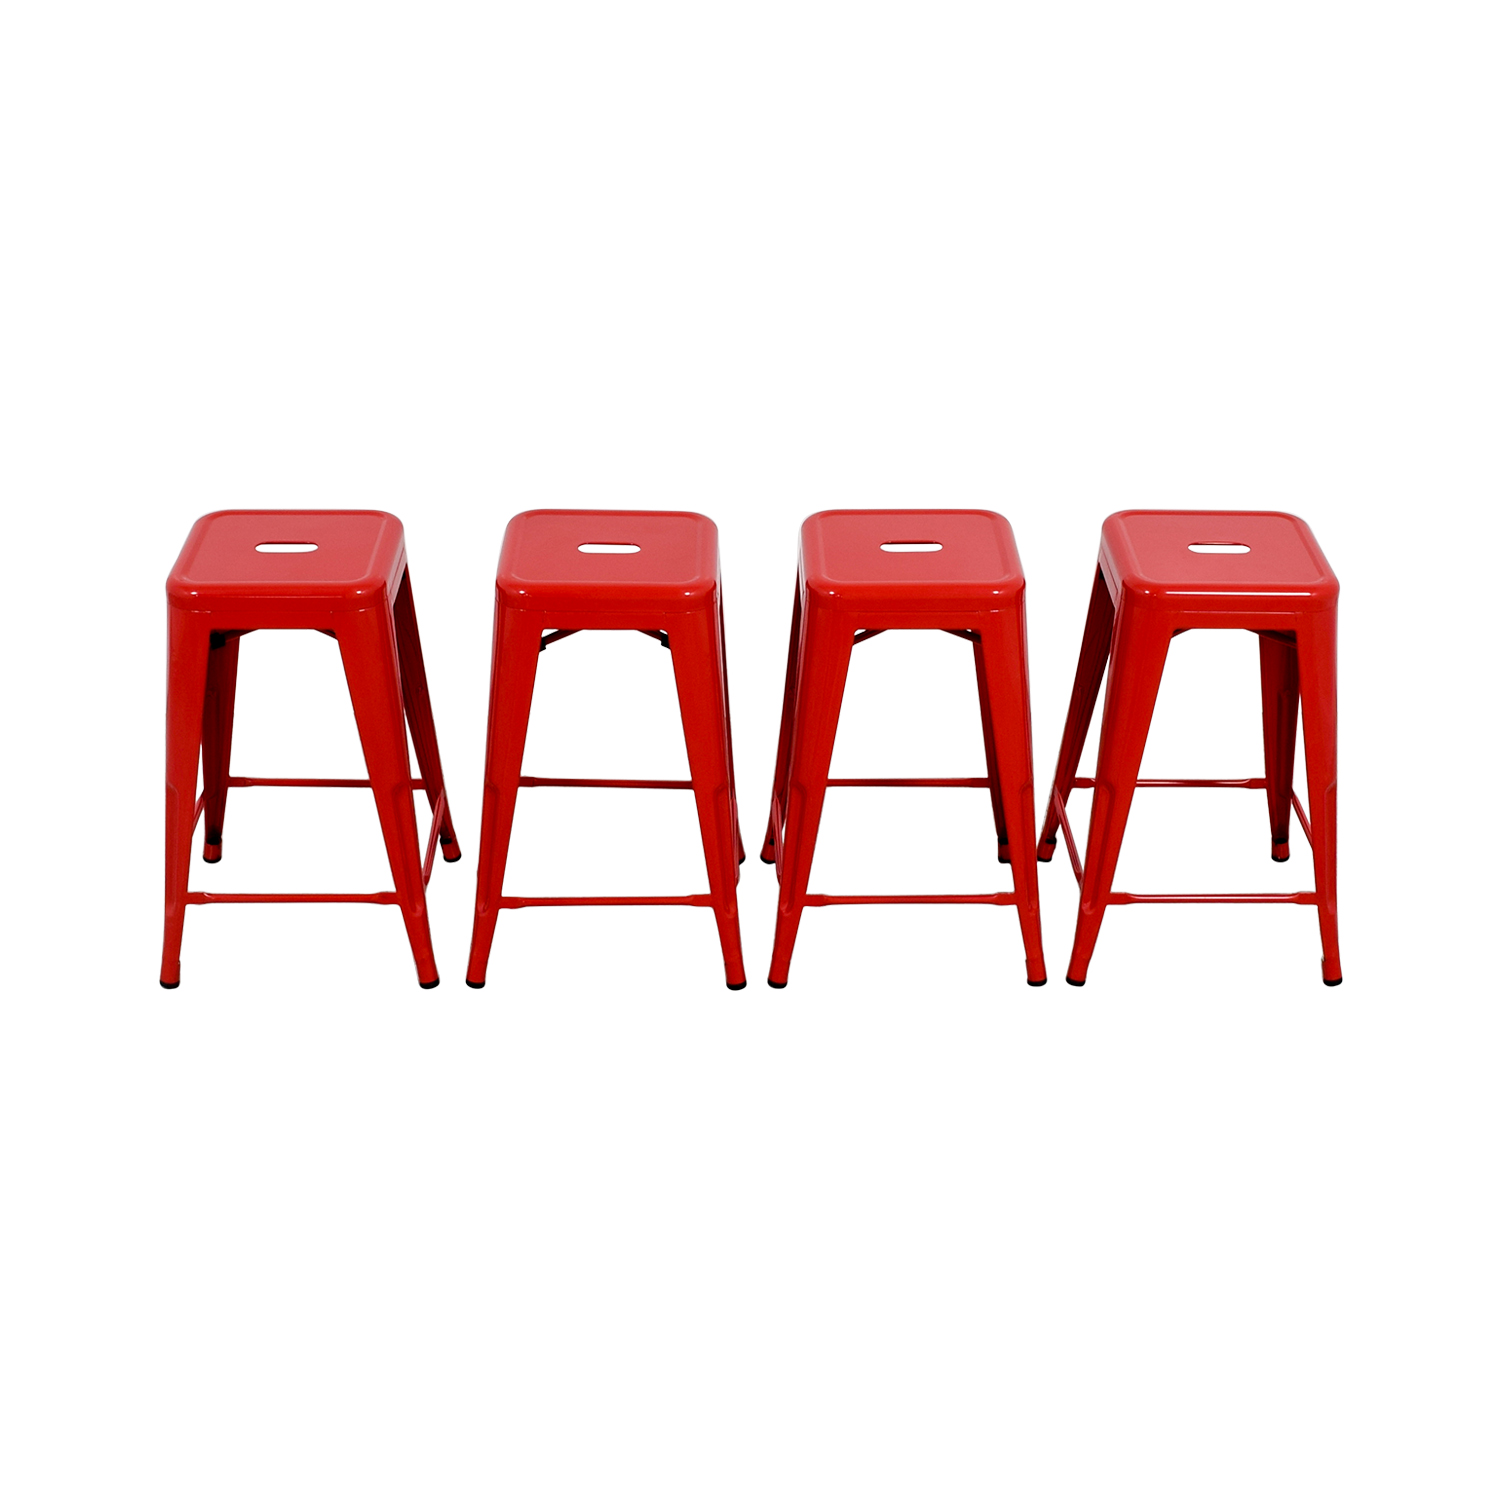 buy Retro Red Barstools Stools